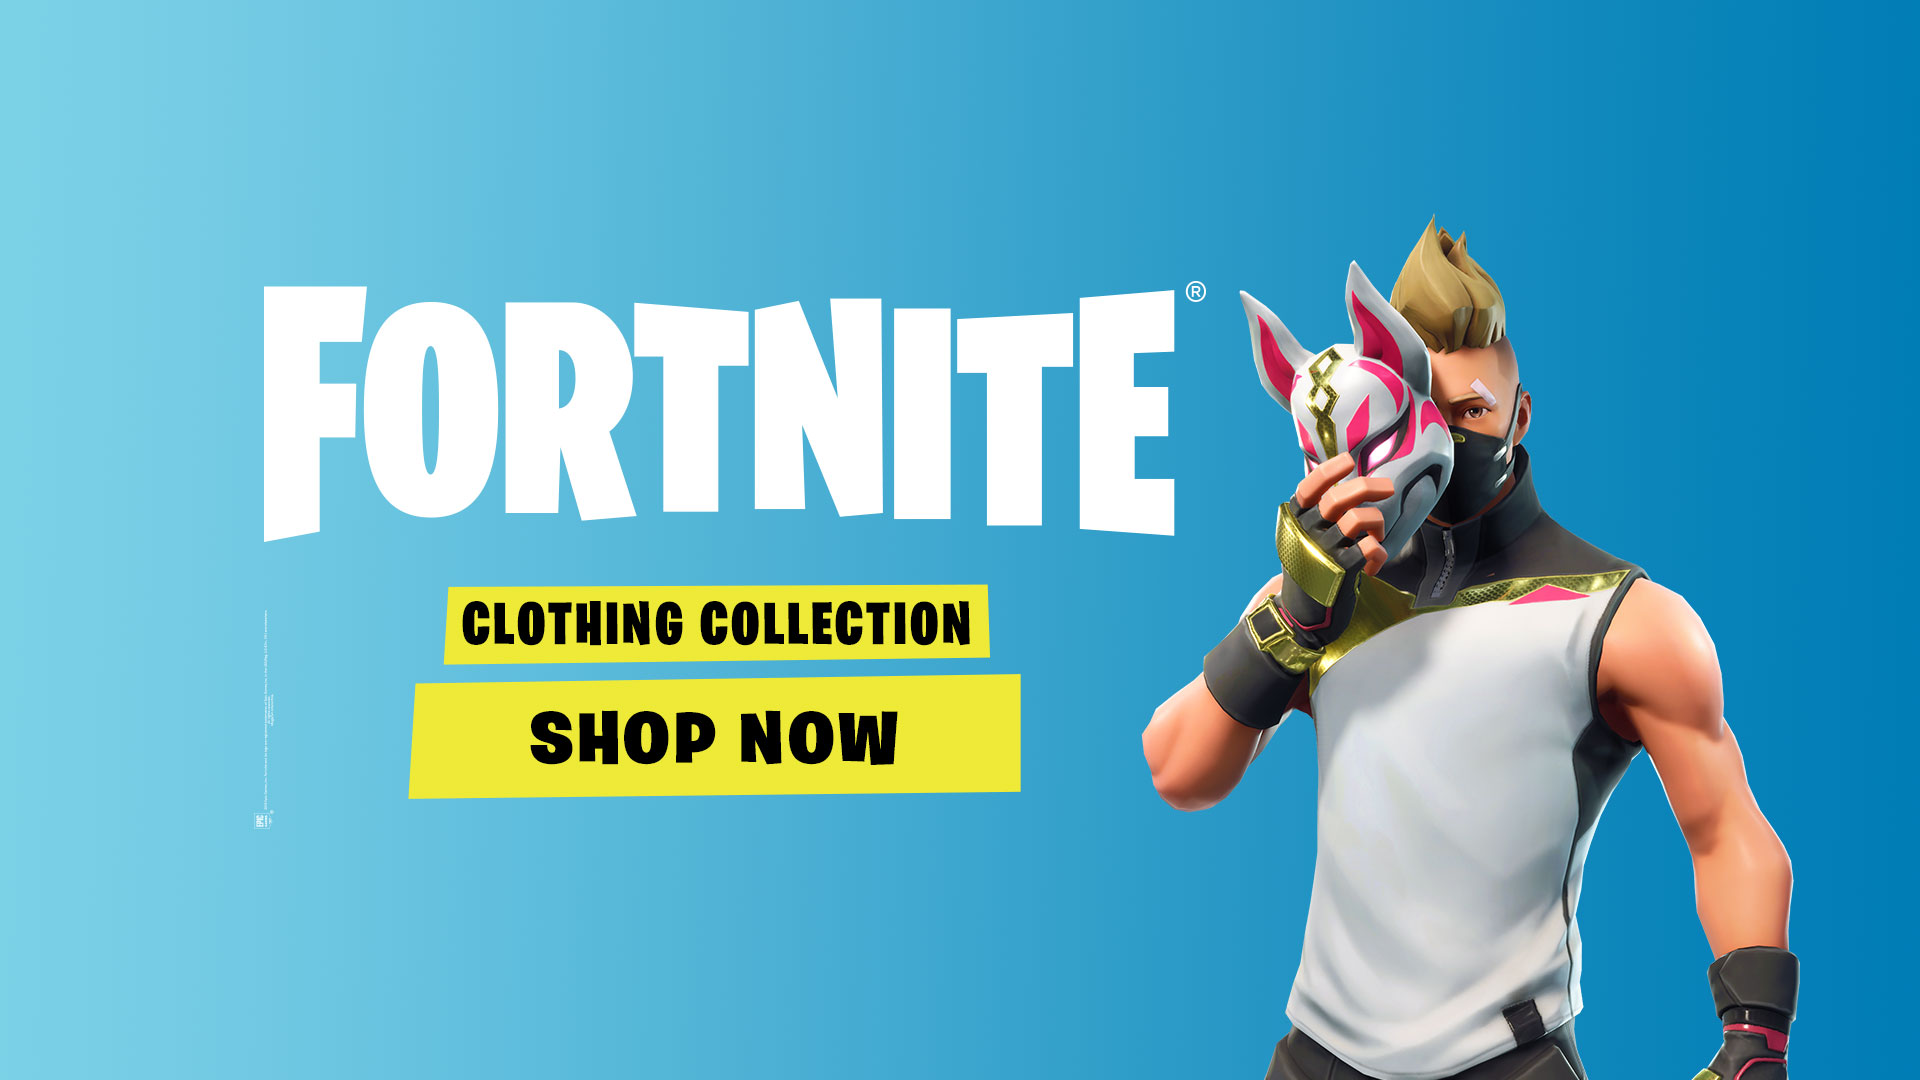 Fortnite Clothing Collection now available